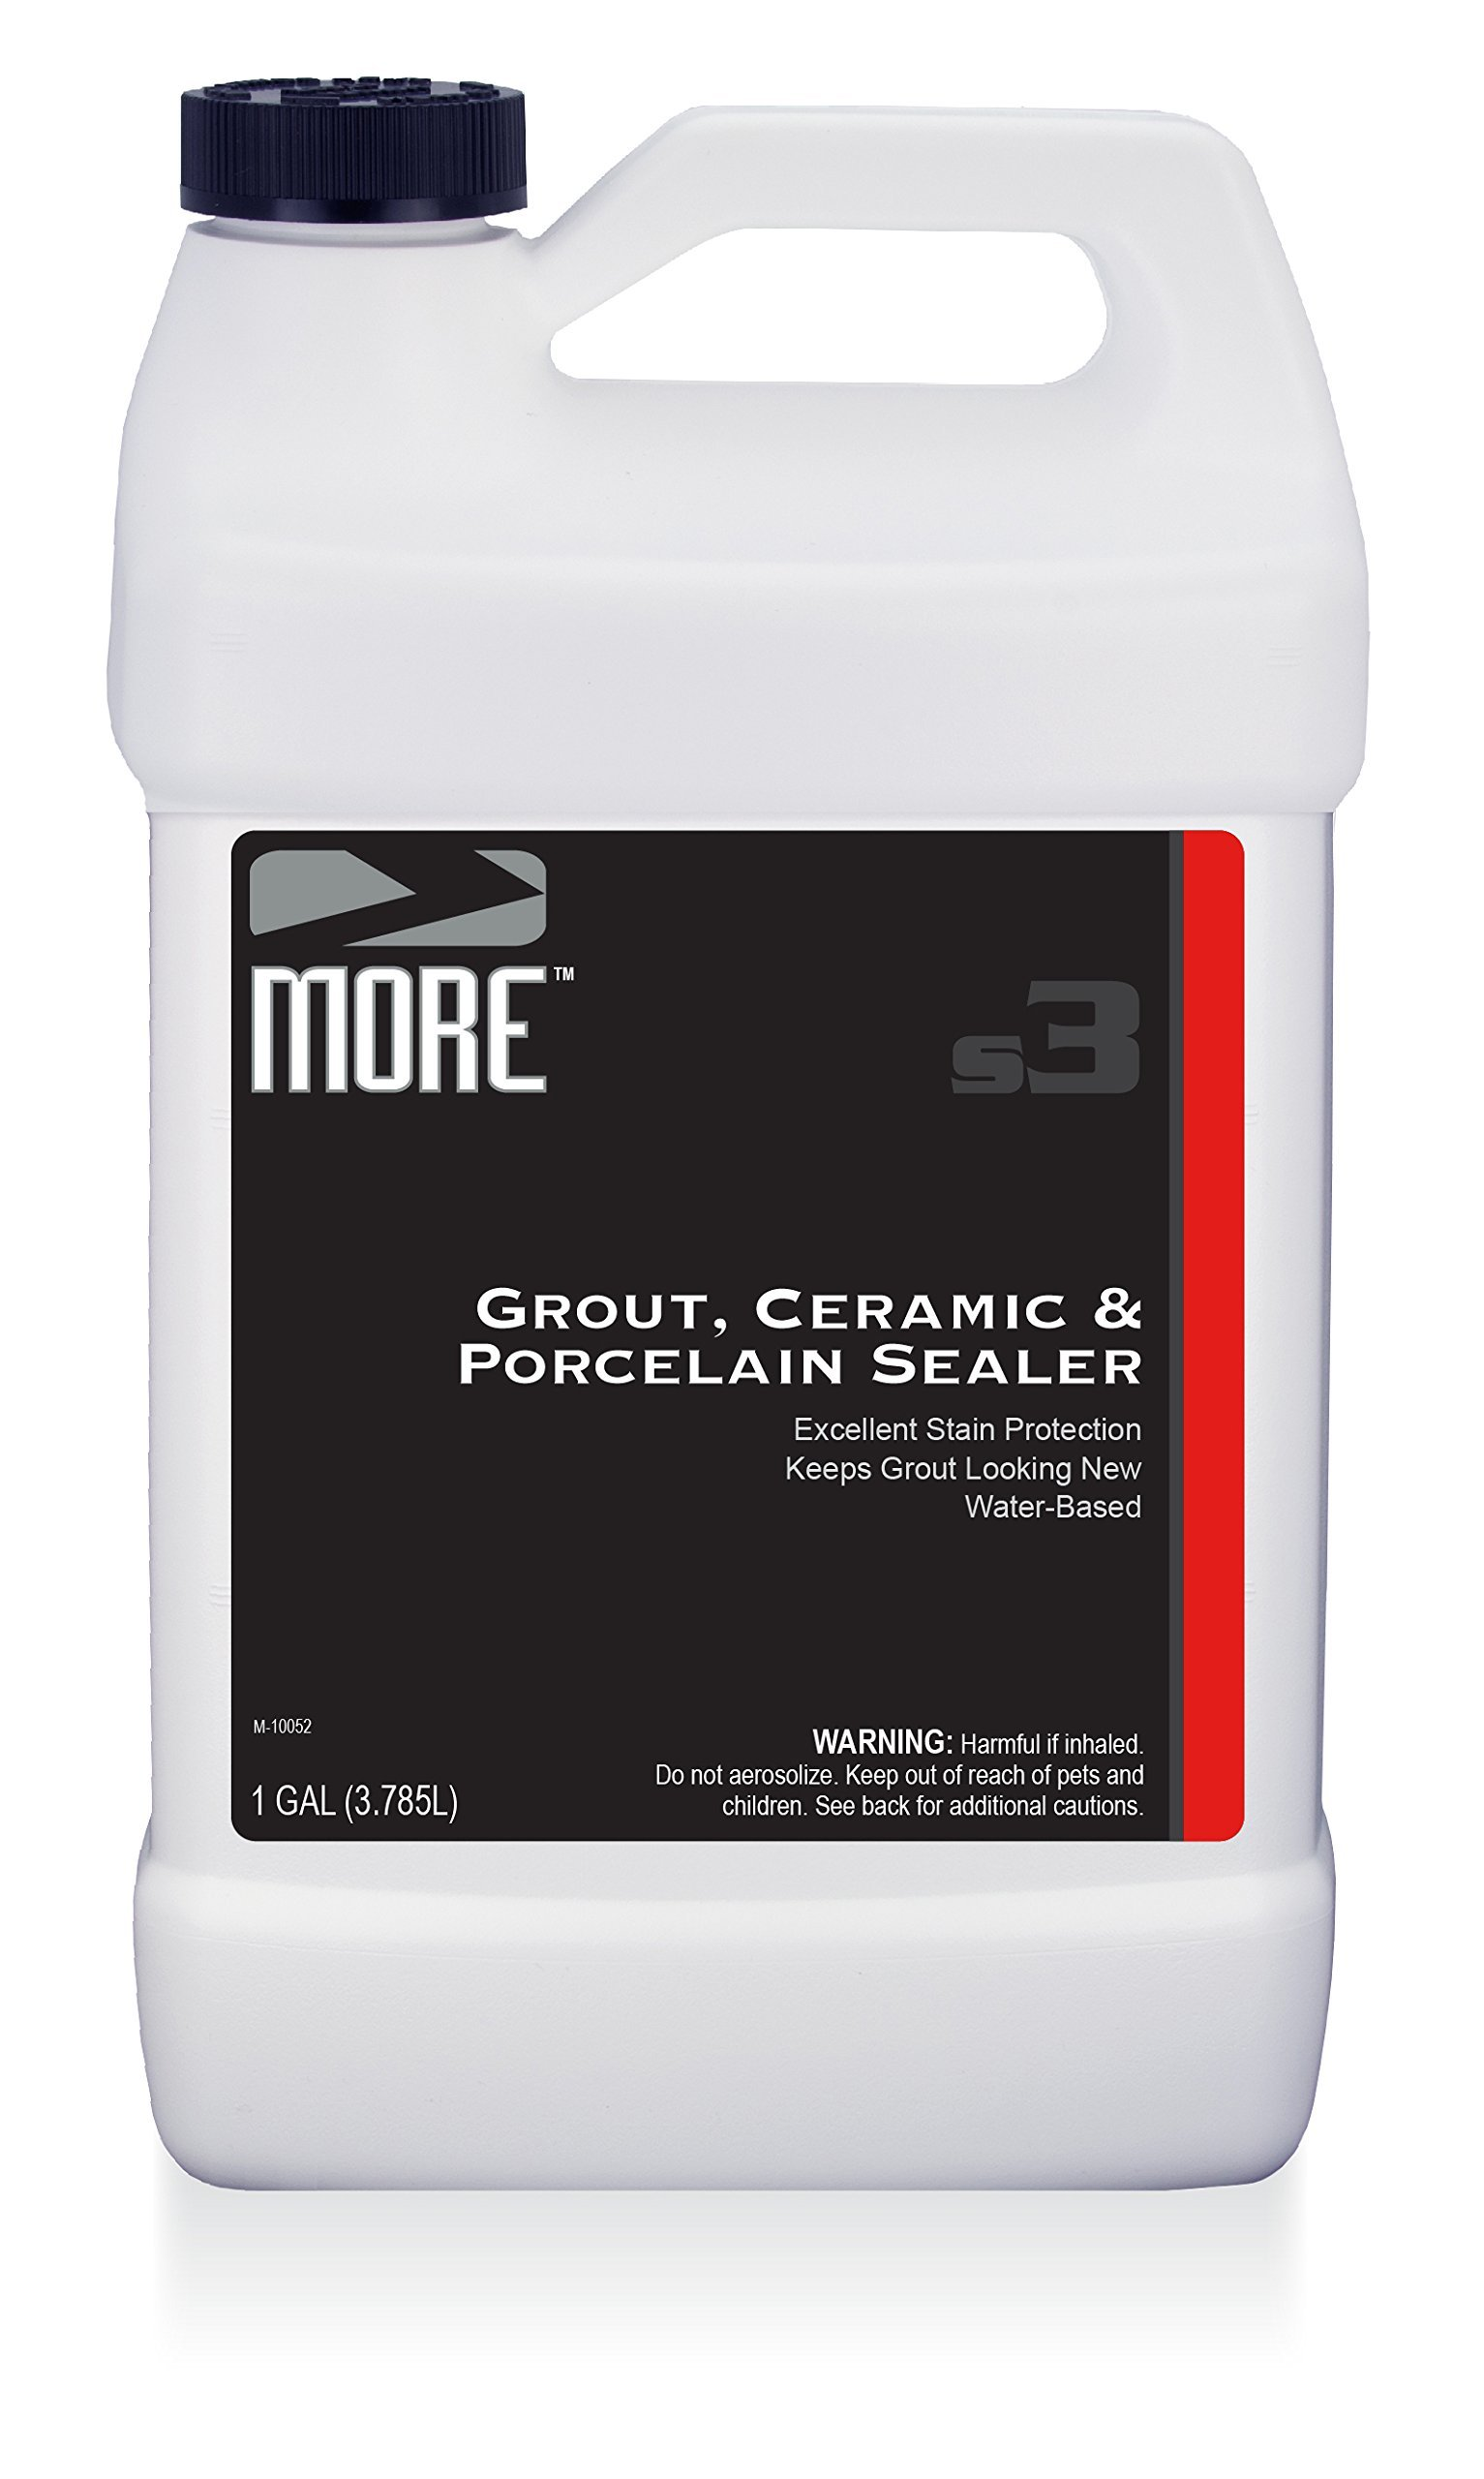 MORE Grout, Ceramic & Porcelain Sealer - Gentle, Water Based Formula for Stain Protection [Gallon / 128 oz]